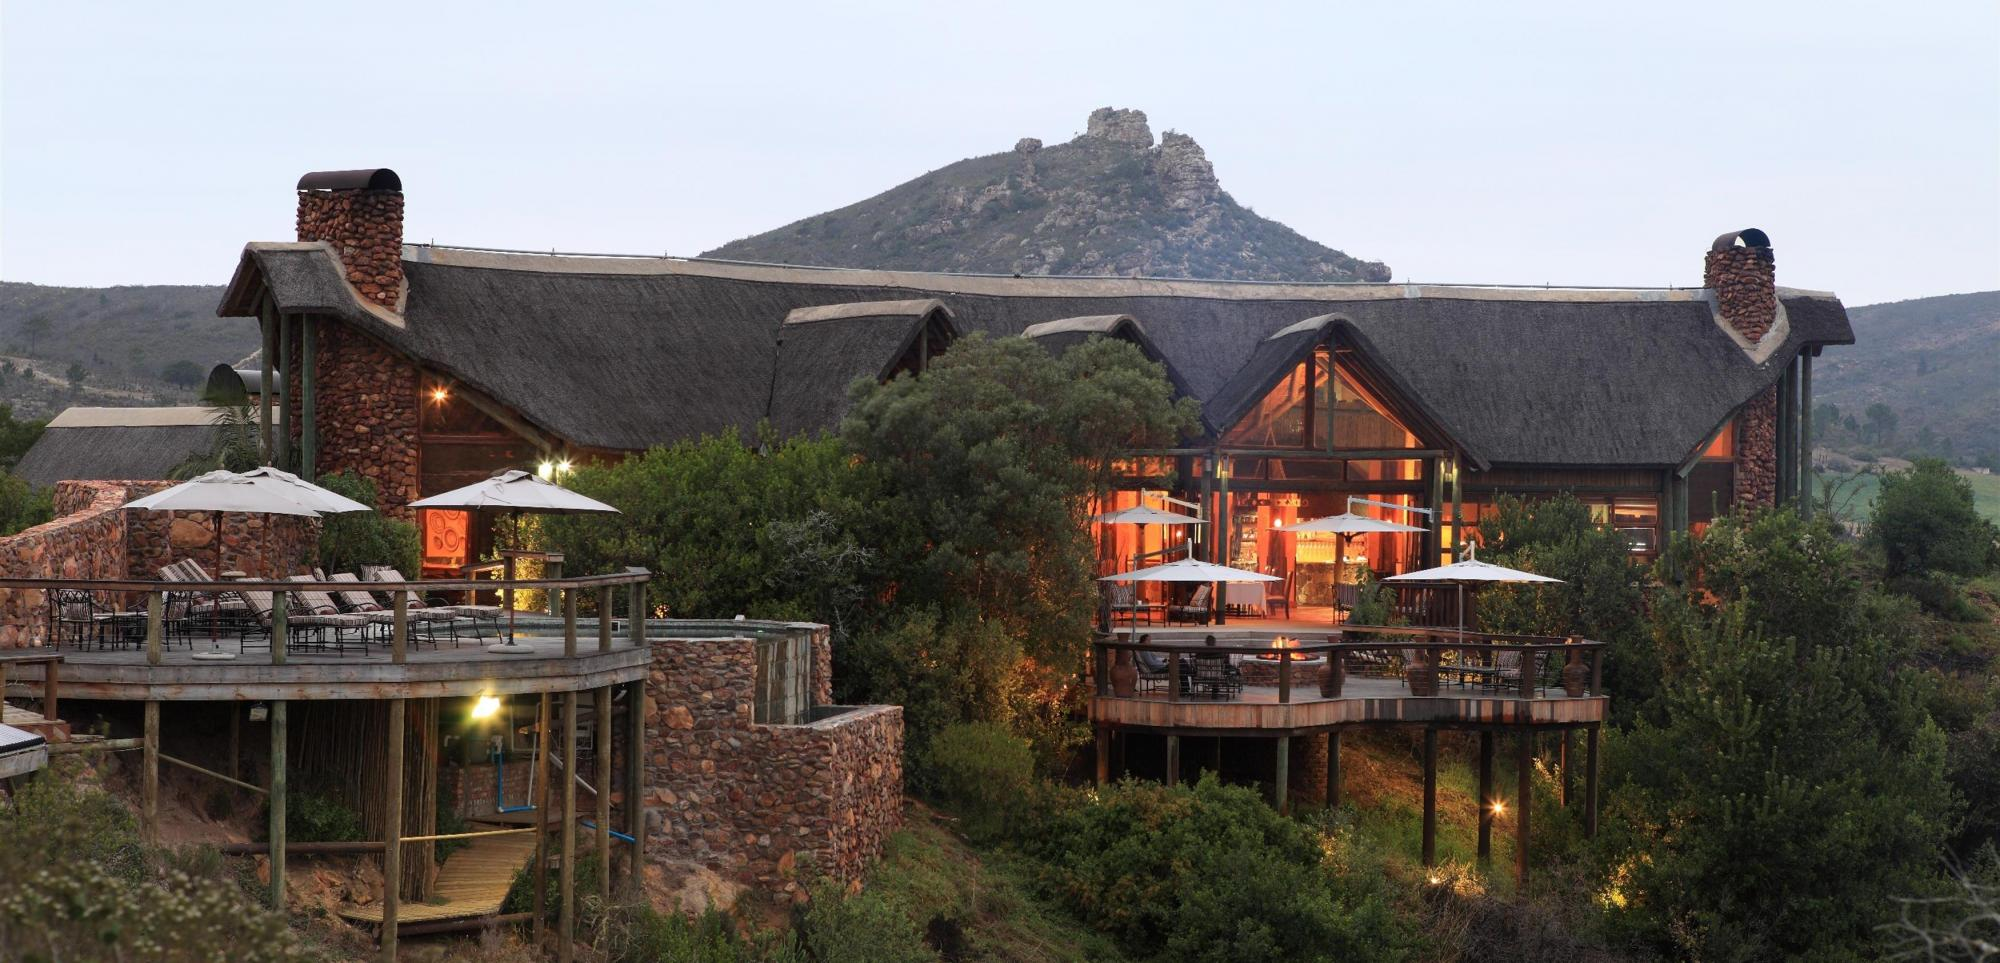 The Kwa Maritane Bush lodge's lovely lodge in magnificent South Africa.